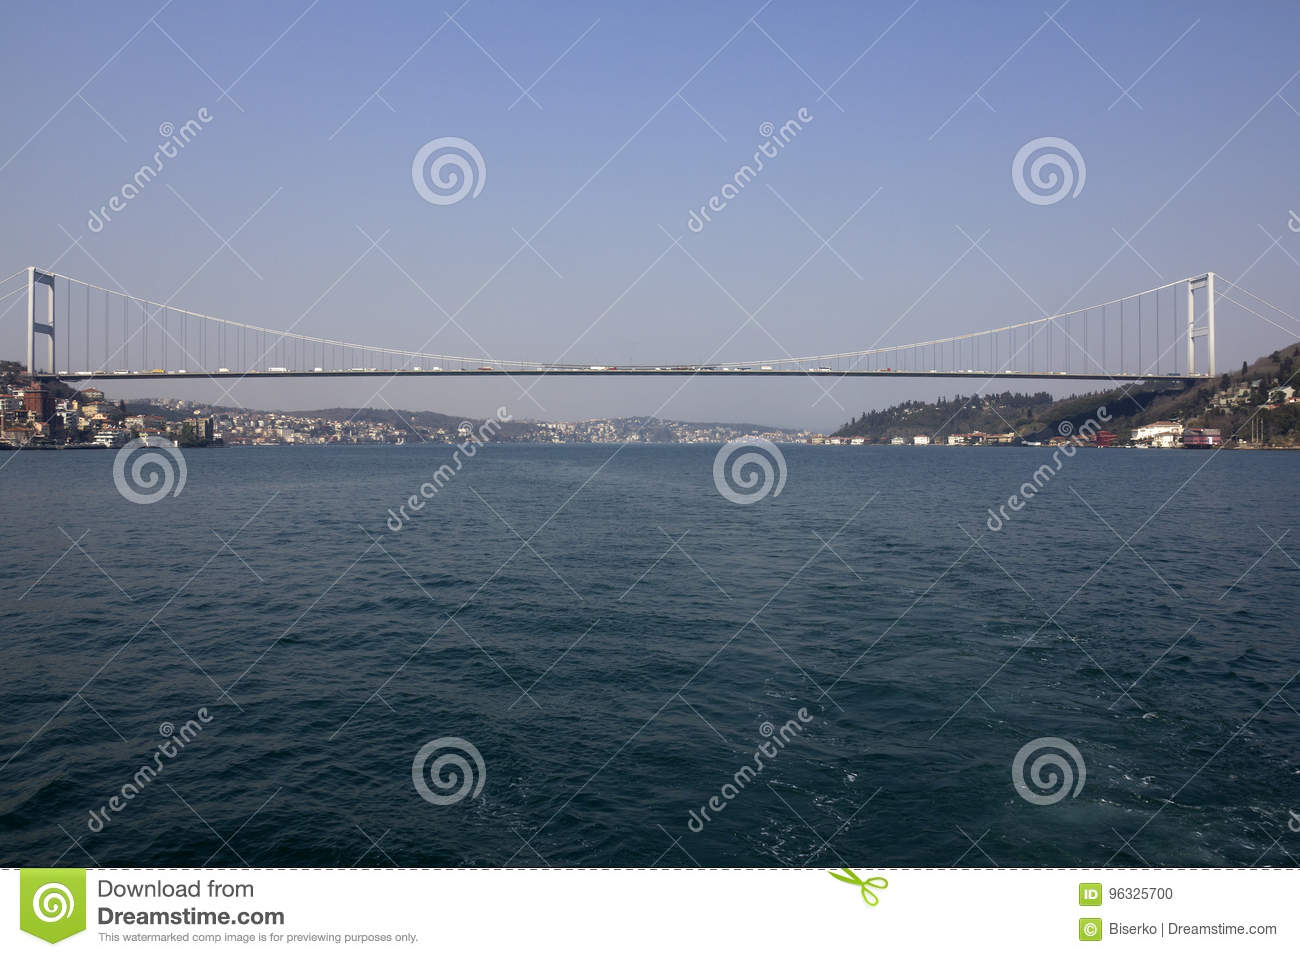 Bridge connecting Europe and Asia in Turkey